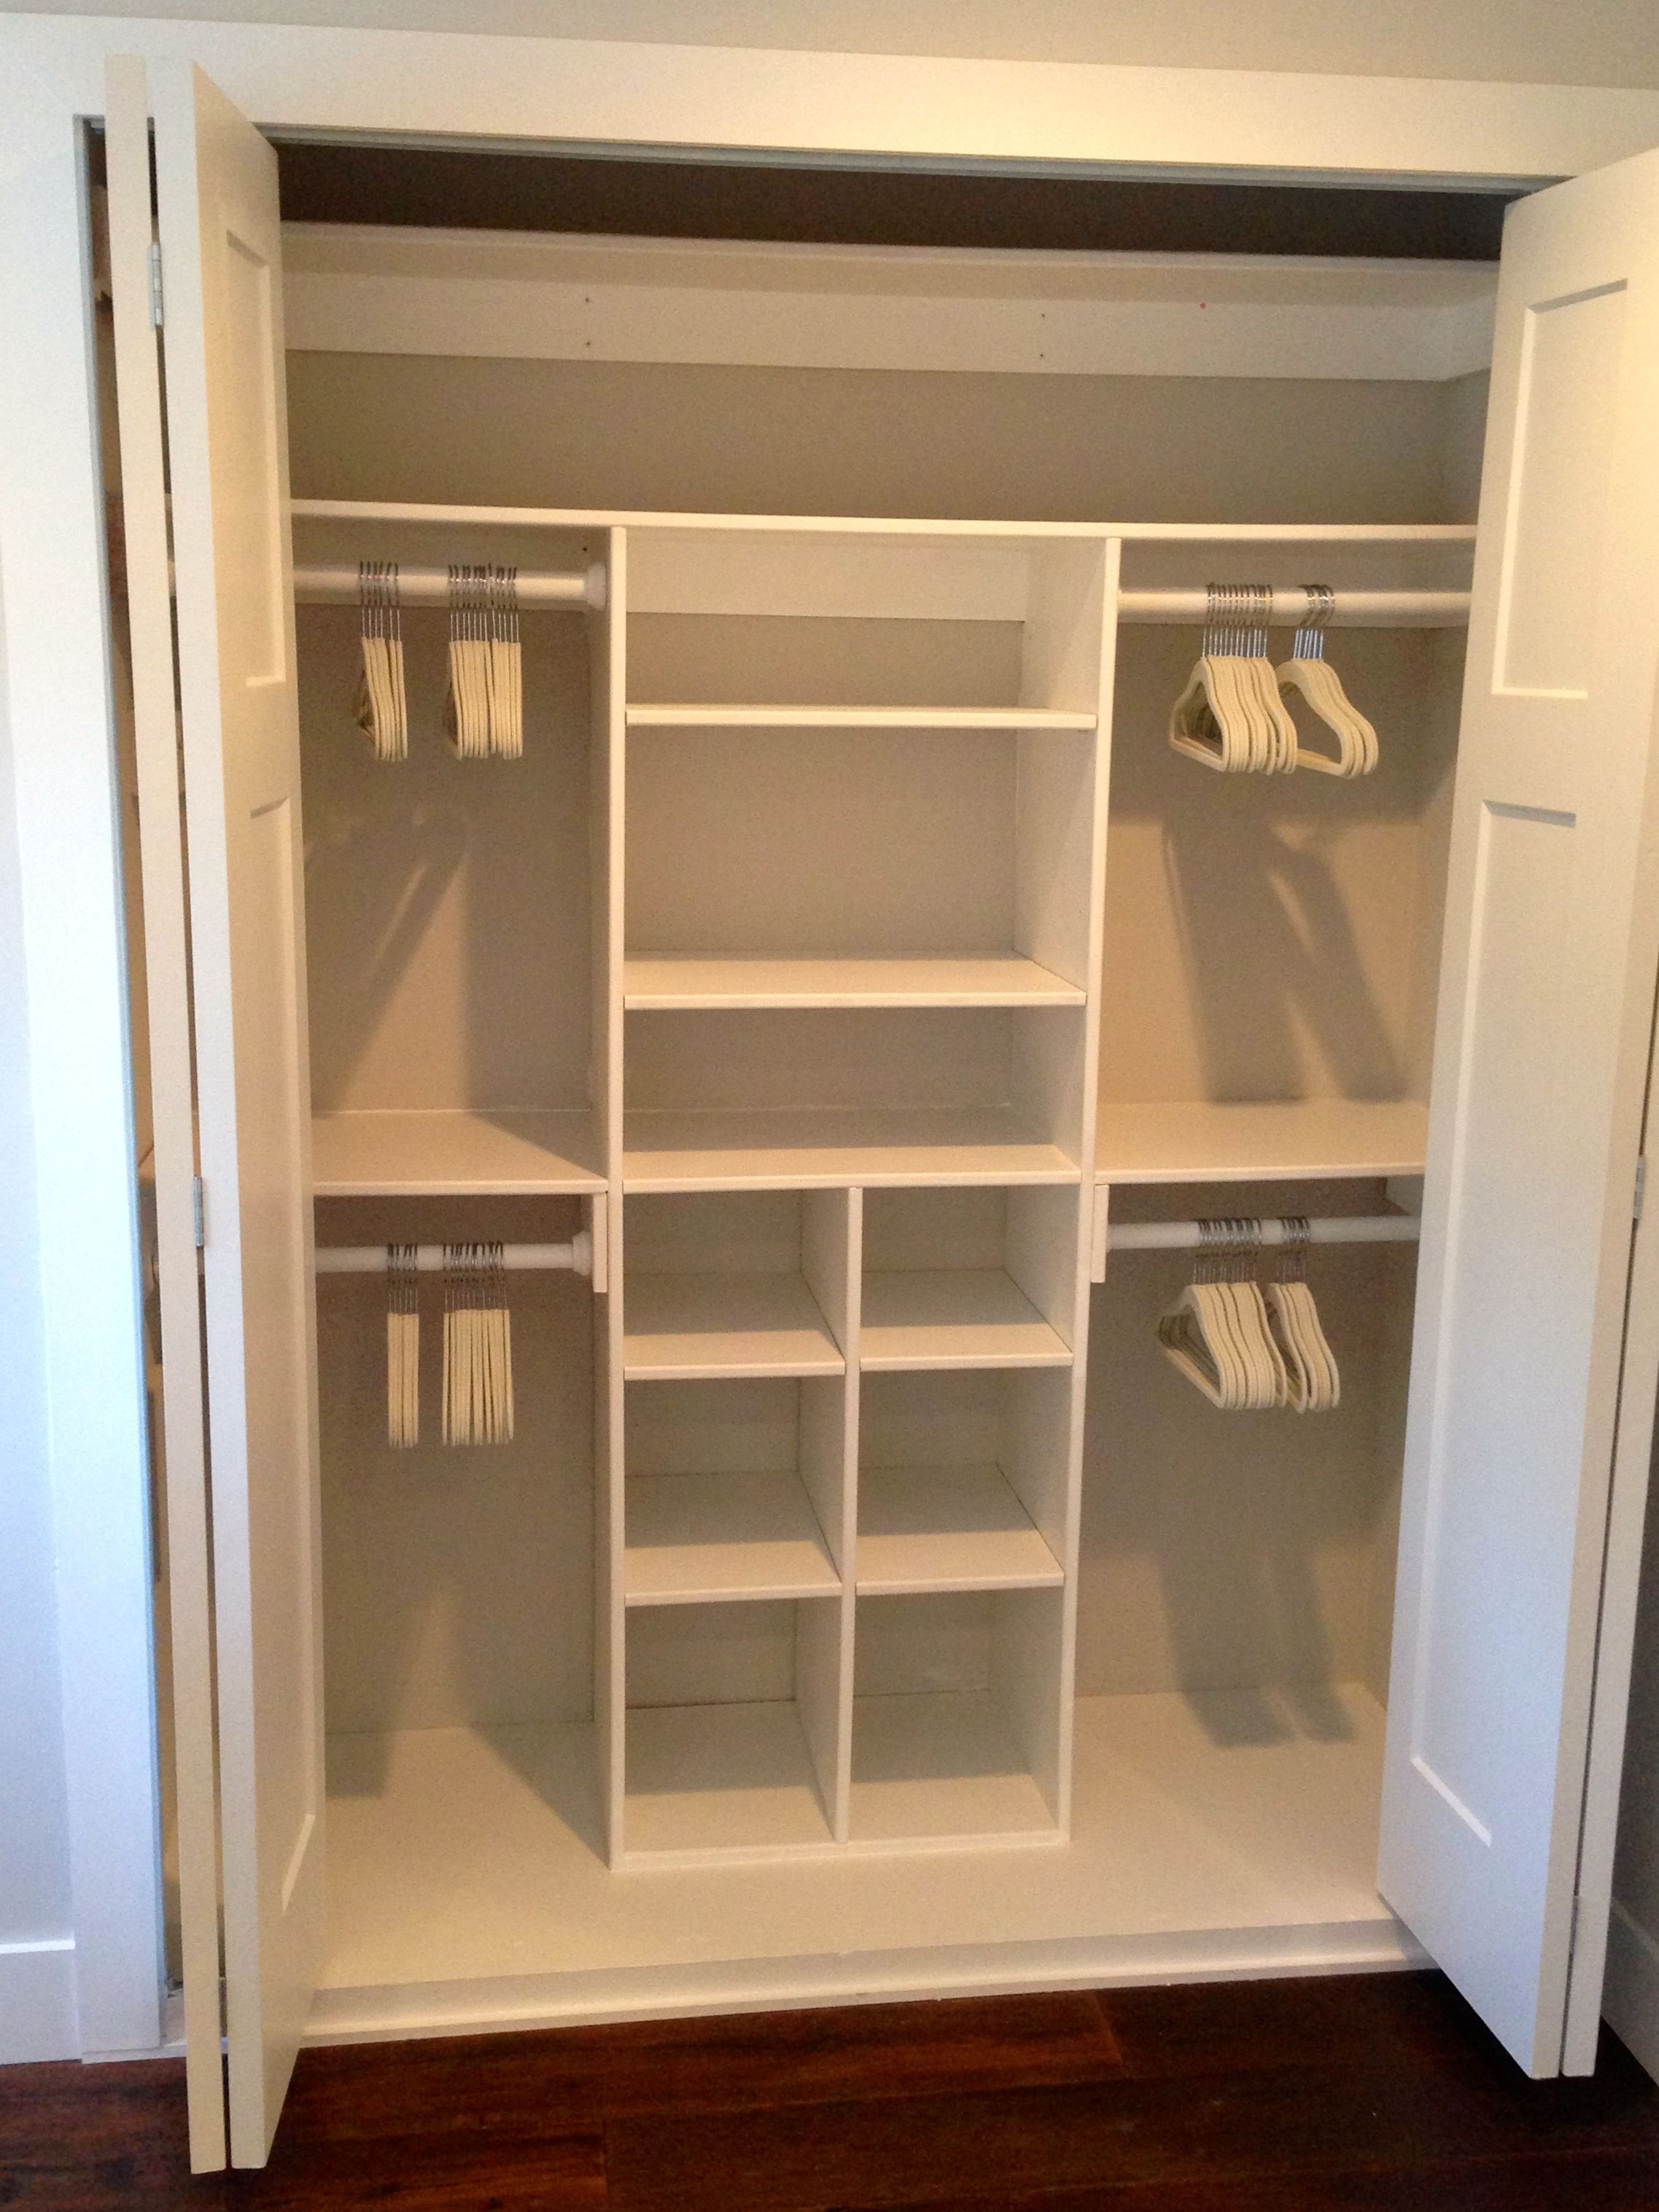 Just My Size Closet | Do It Yourself Home Projects from Ana White ...